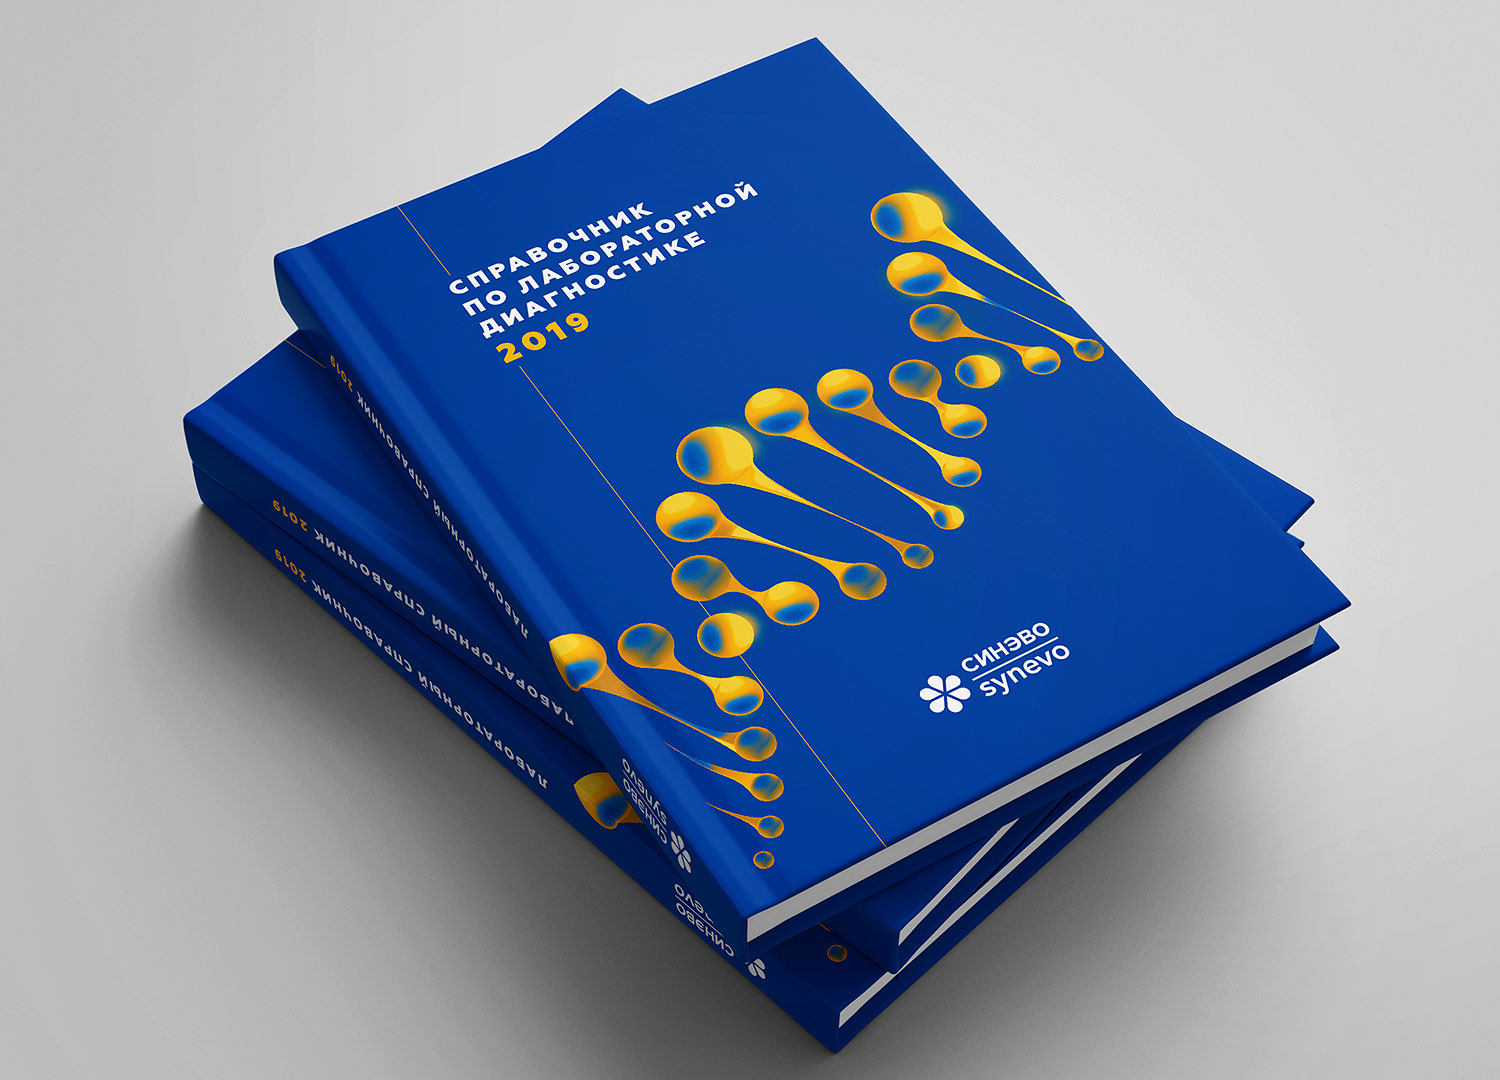 2019 Synevo laboratory diagnostics handbook. A stylish directory cover and the DNA helix.